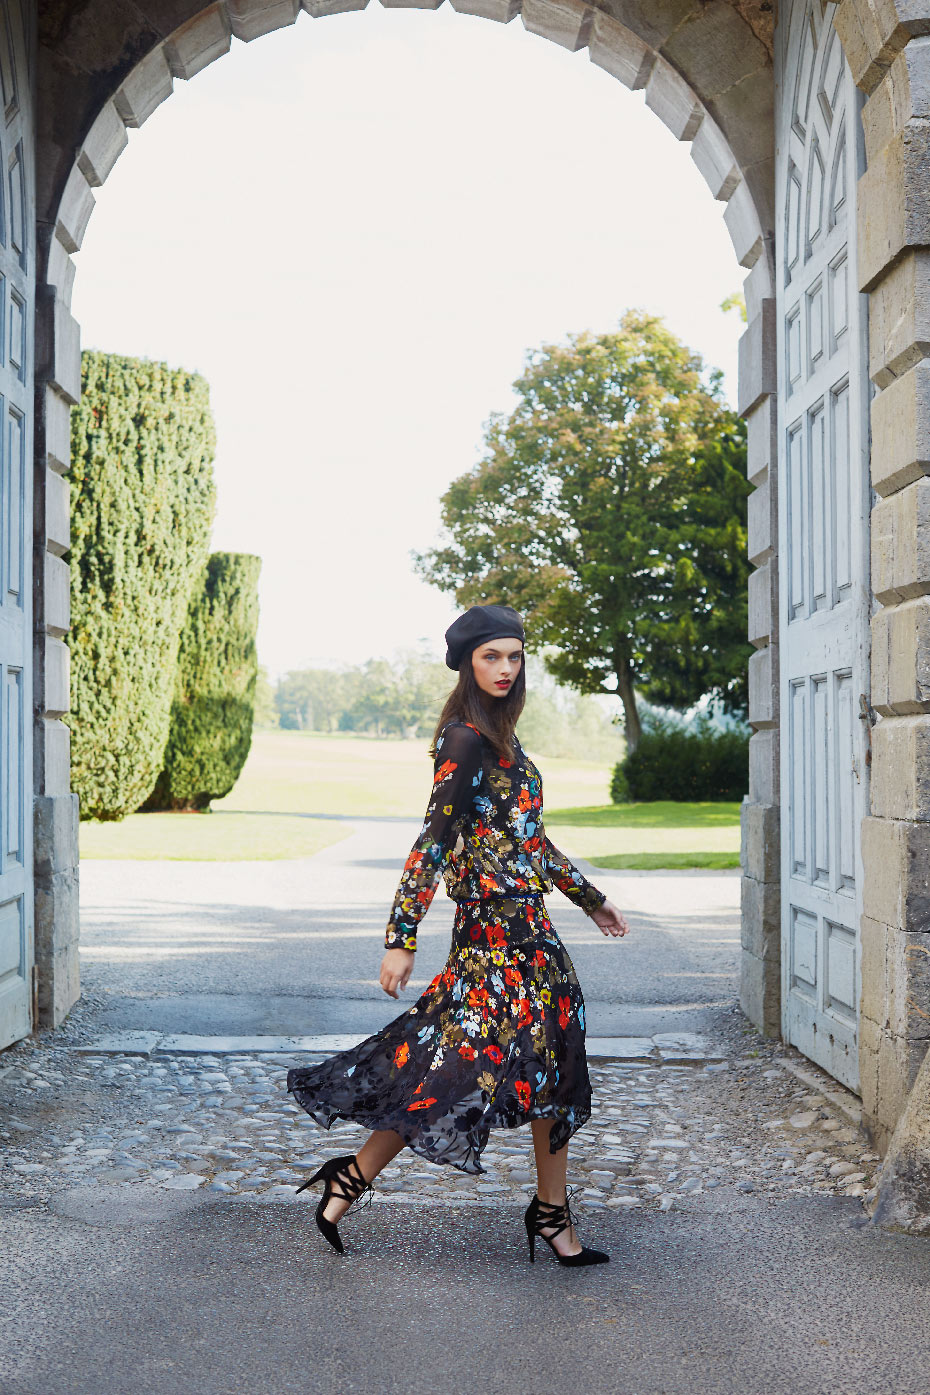 Stacey Van Berkel Photography : Carton House Travel Fashion shoot